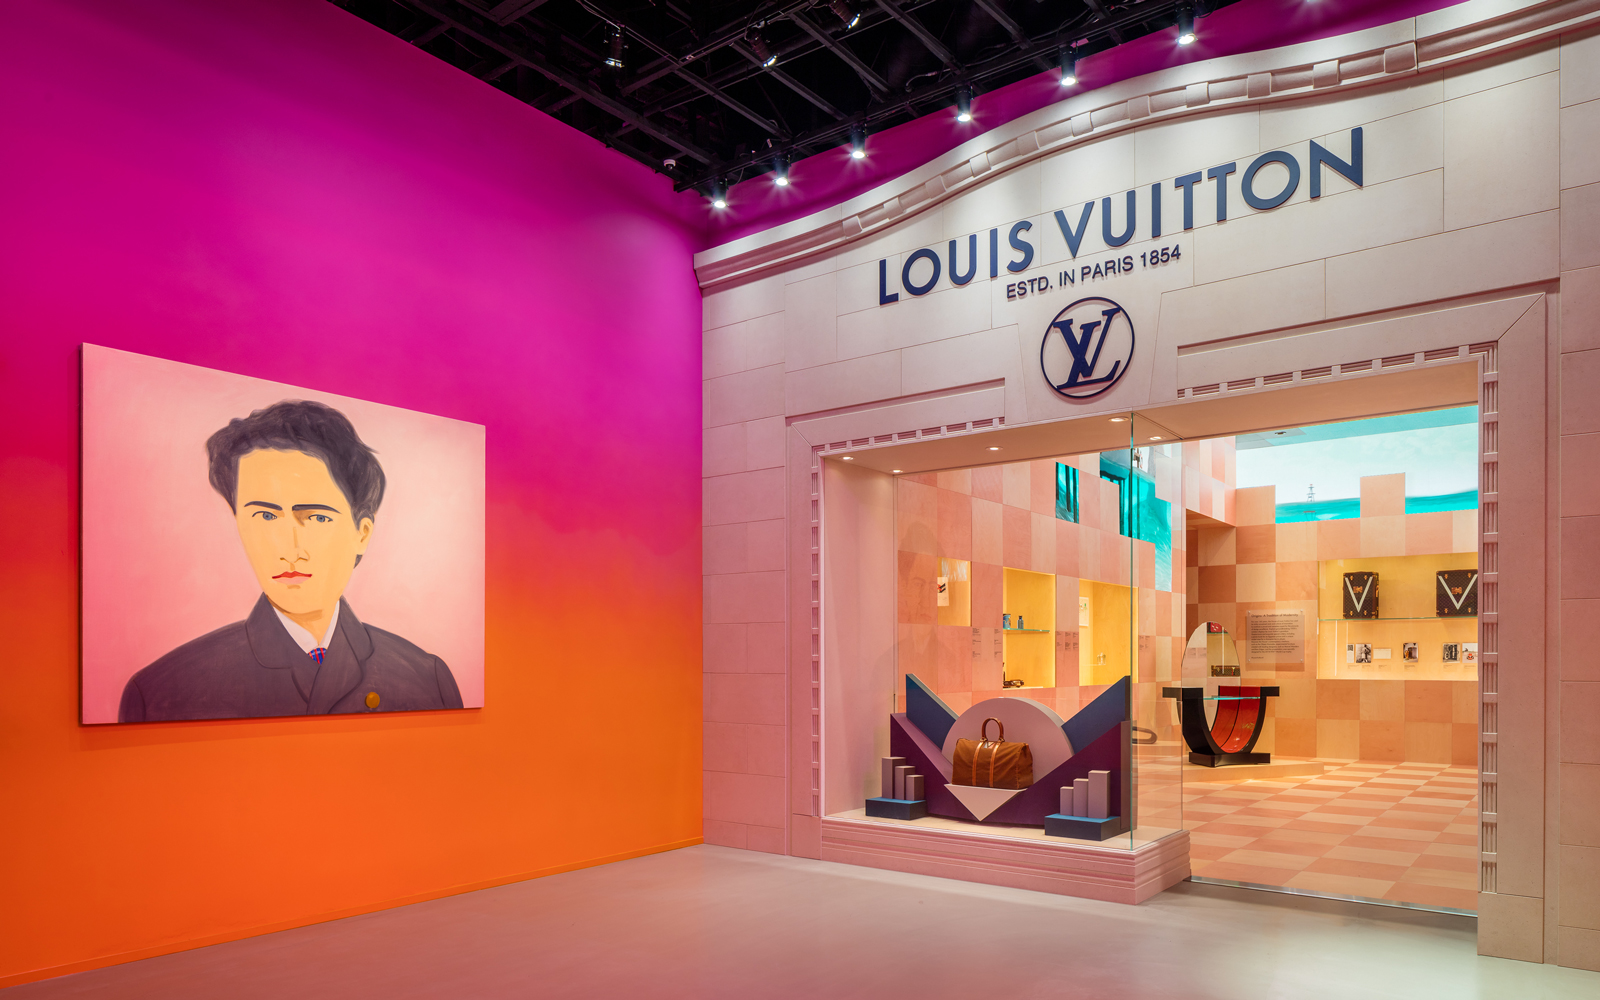 Louis Vuitton Has a New Immersive Exhibit in Honor of the Brand's 160-year History